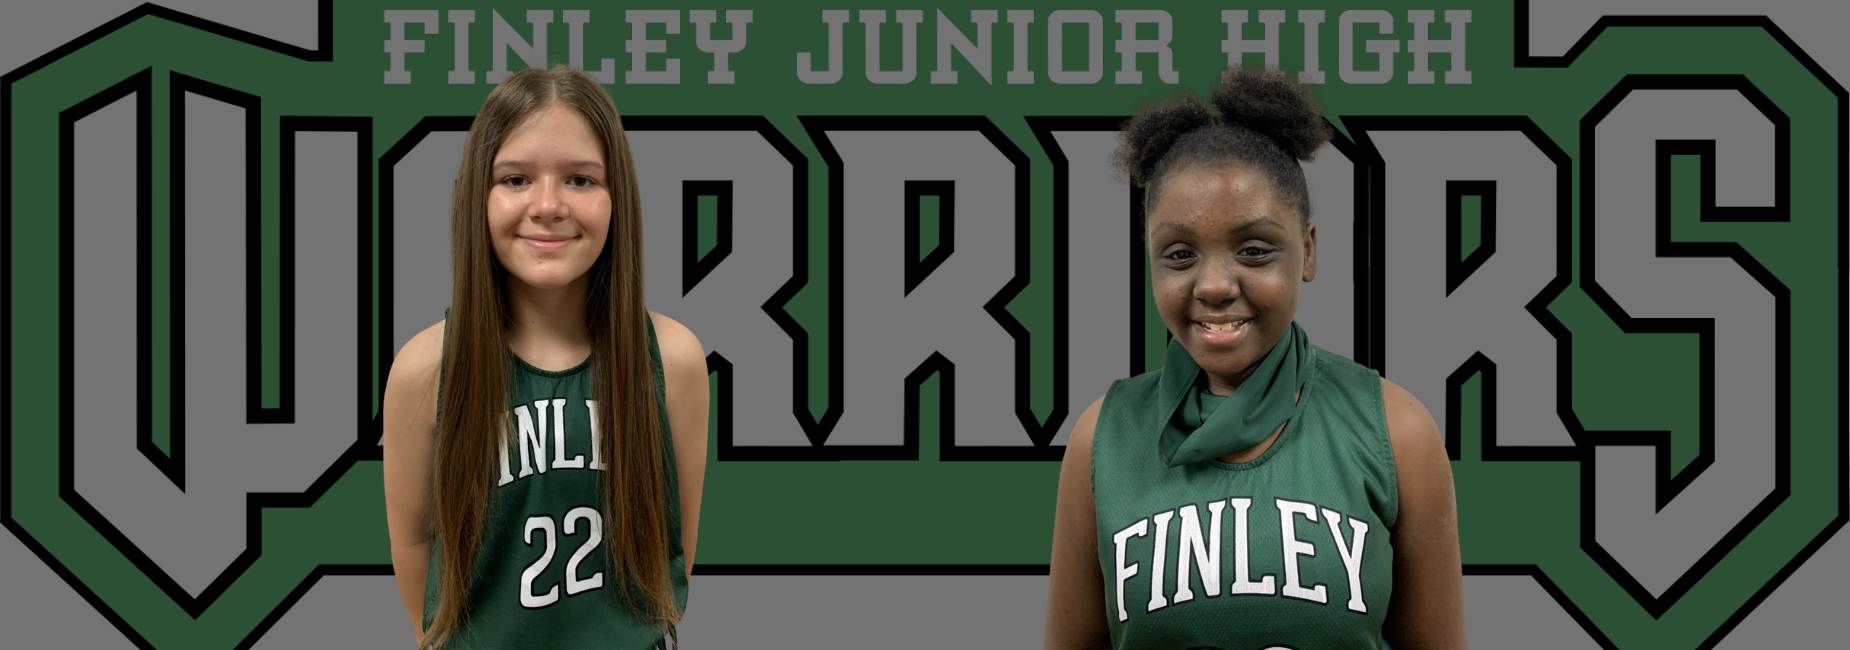 2 girls in their basketball uniforms before the school logo